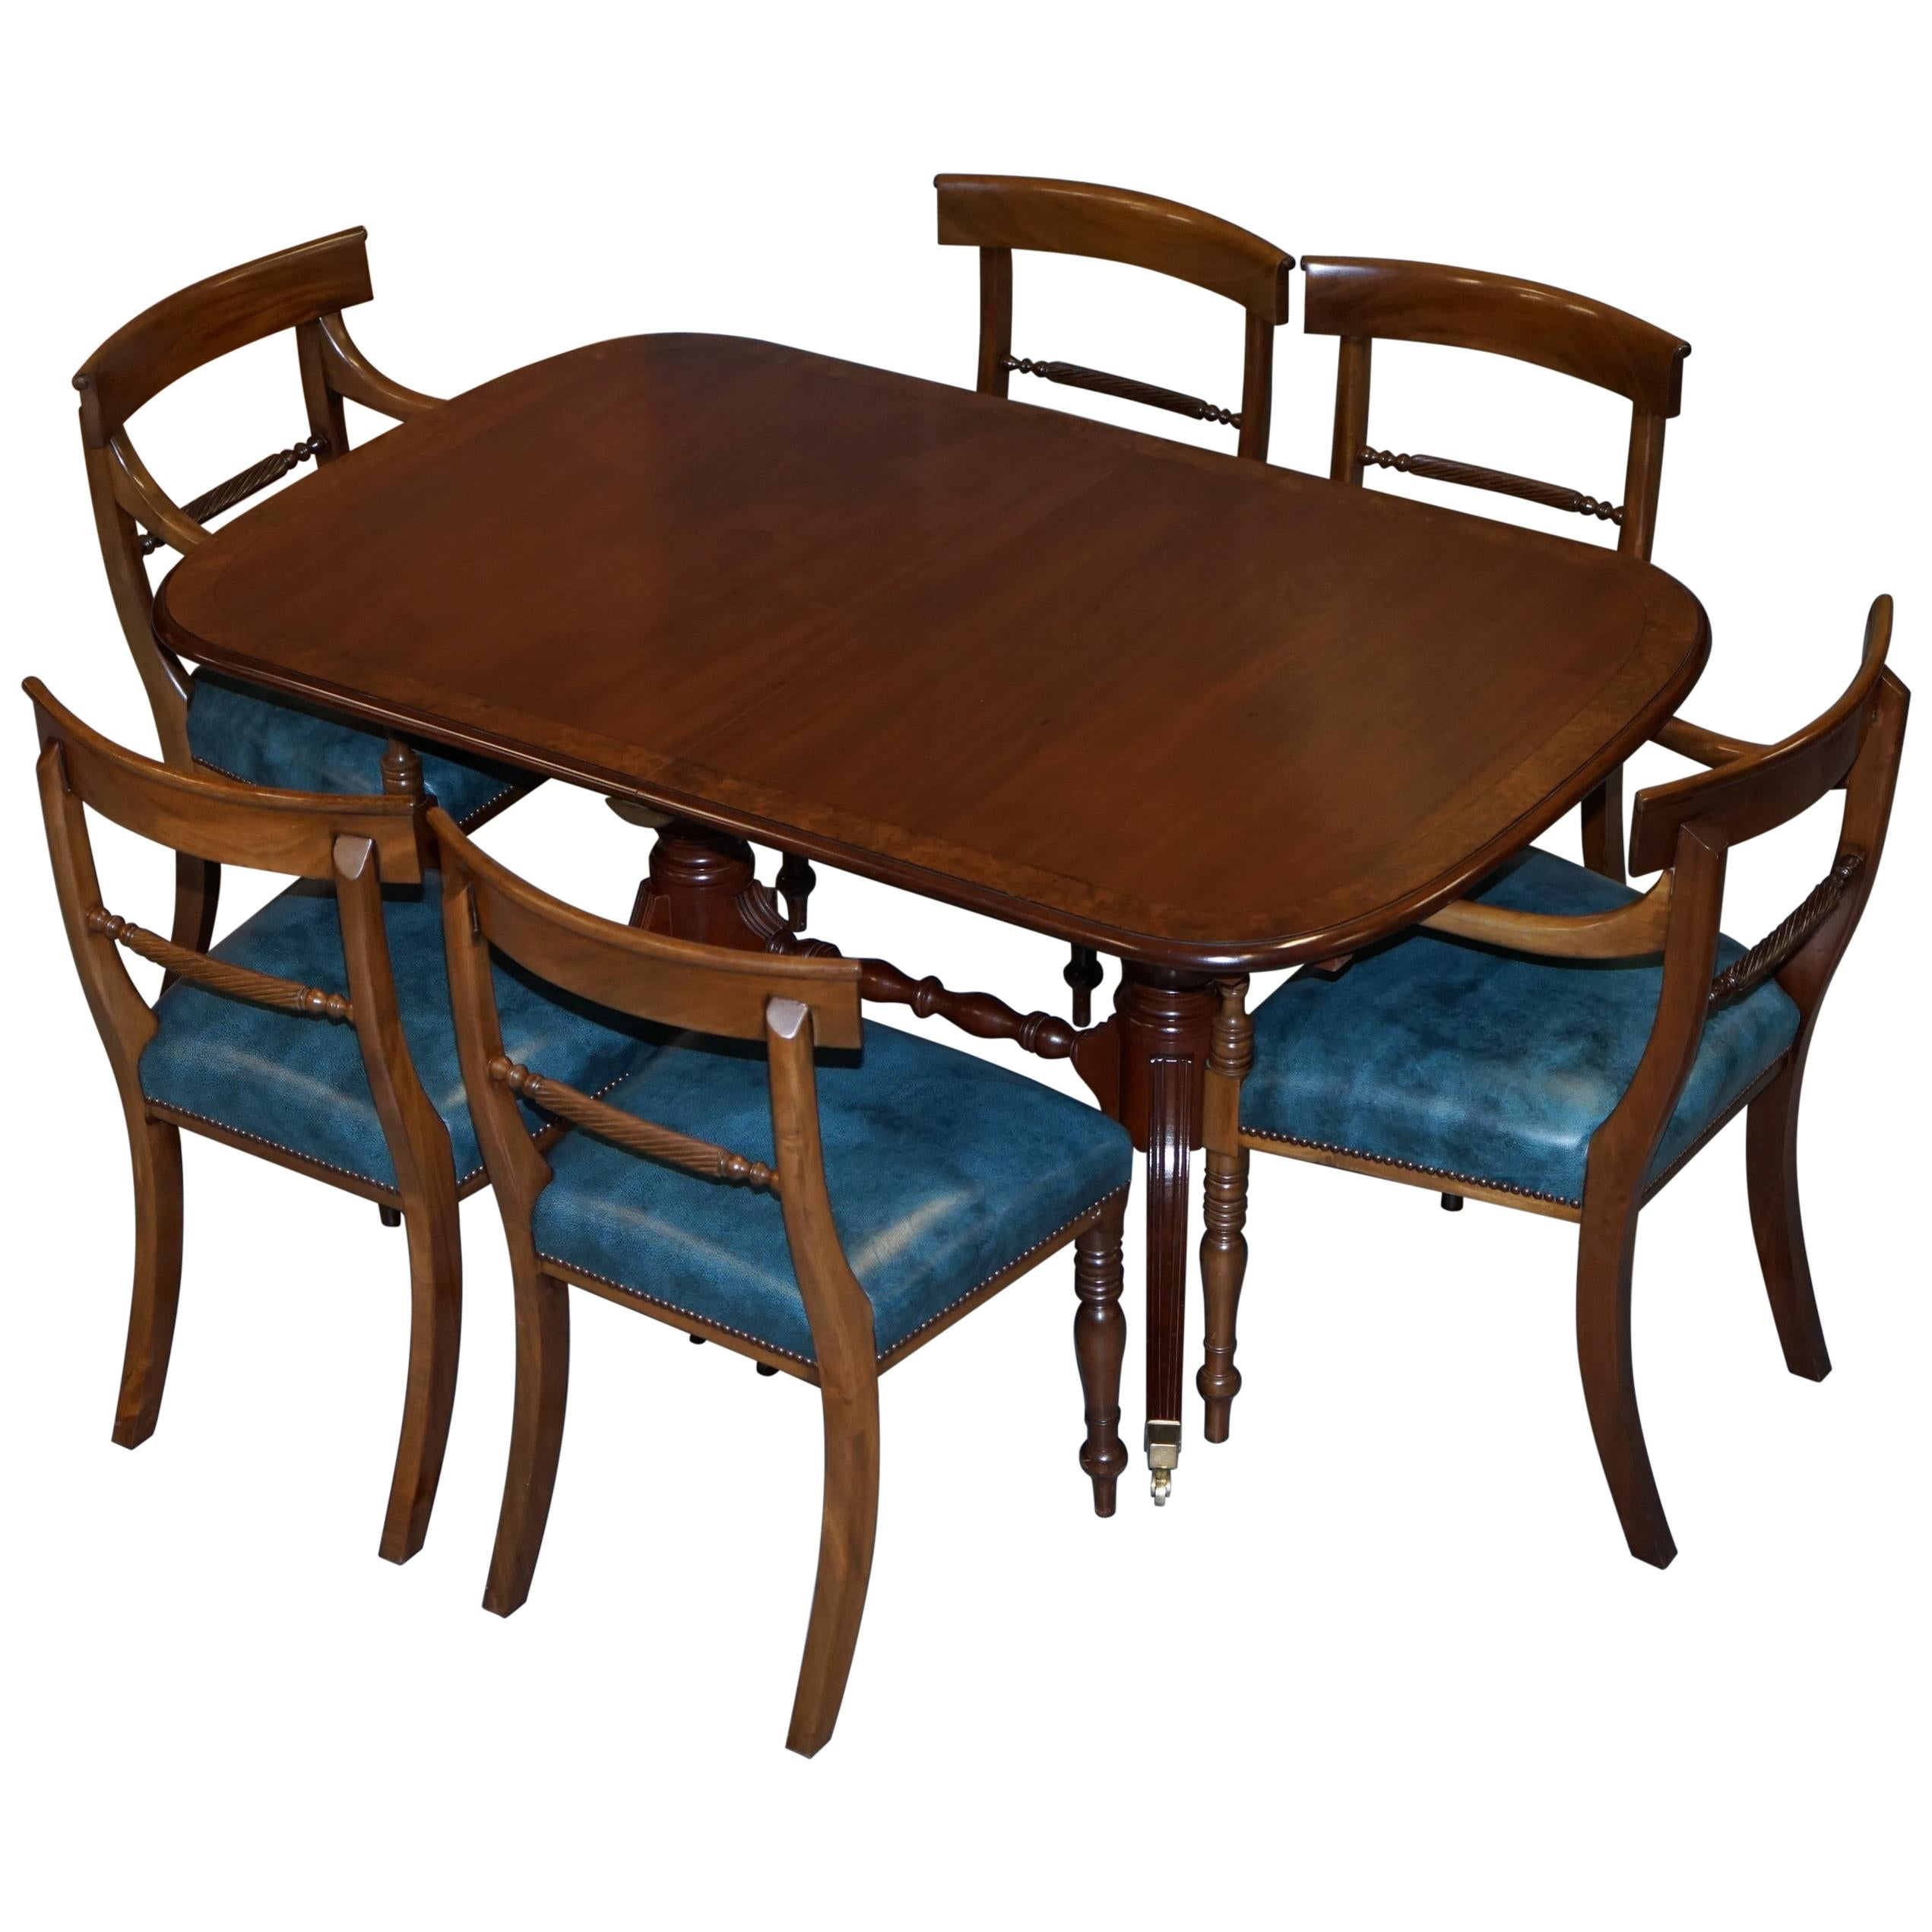 Brights of Nettlebed Burr Walnut Regency Extending Dining Table Chairs